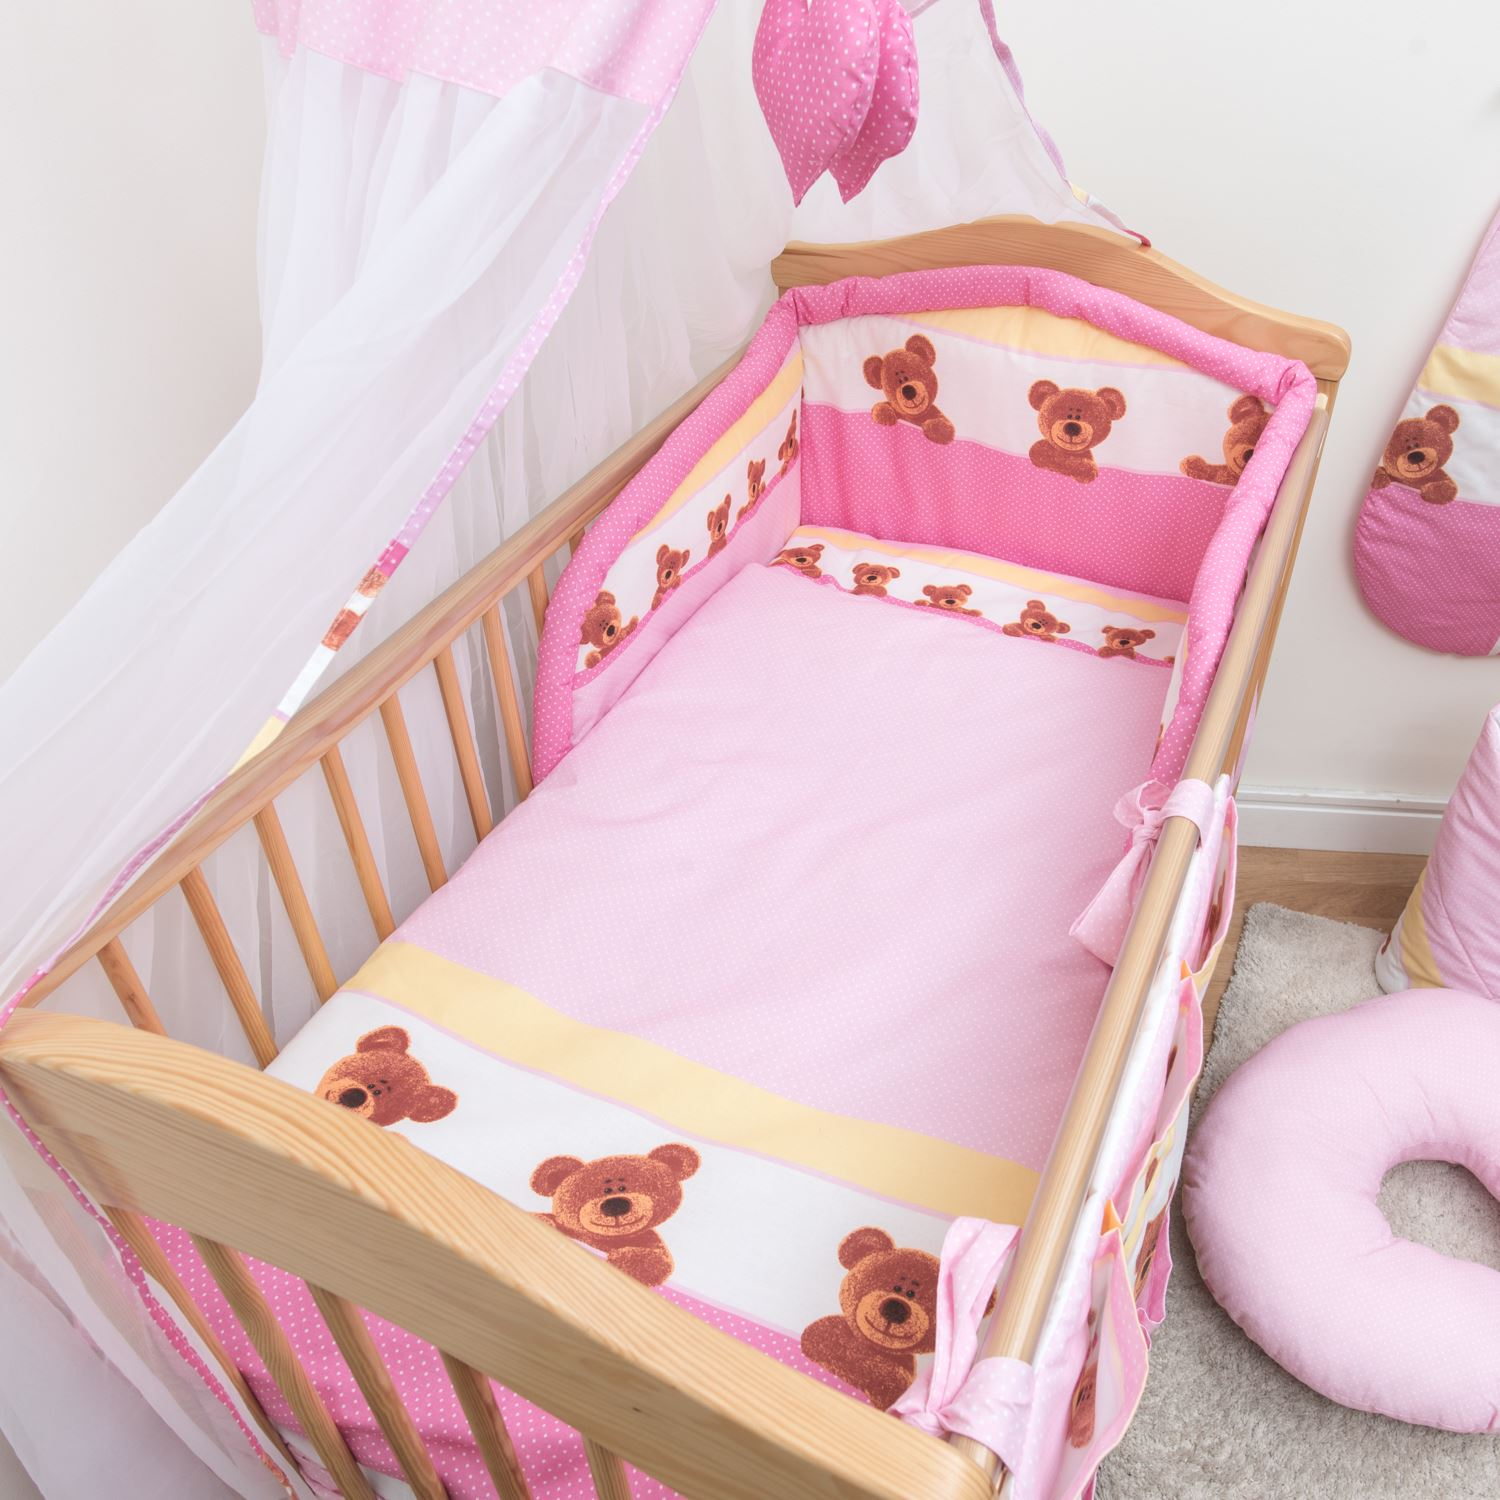 Bad Set For Baby Details About 10 Piece Baby Cot Bedding Set 140 120 Duvet Cover Cot Bed Safety Bumper Canopy